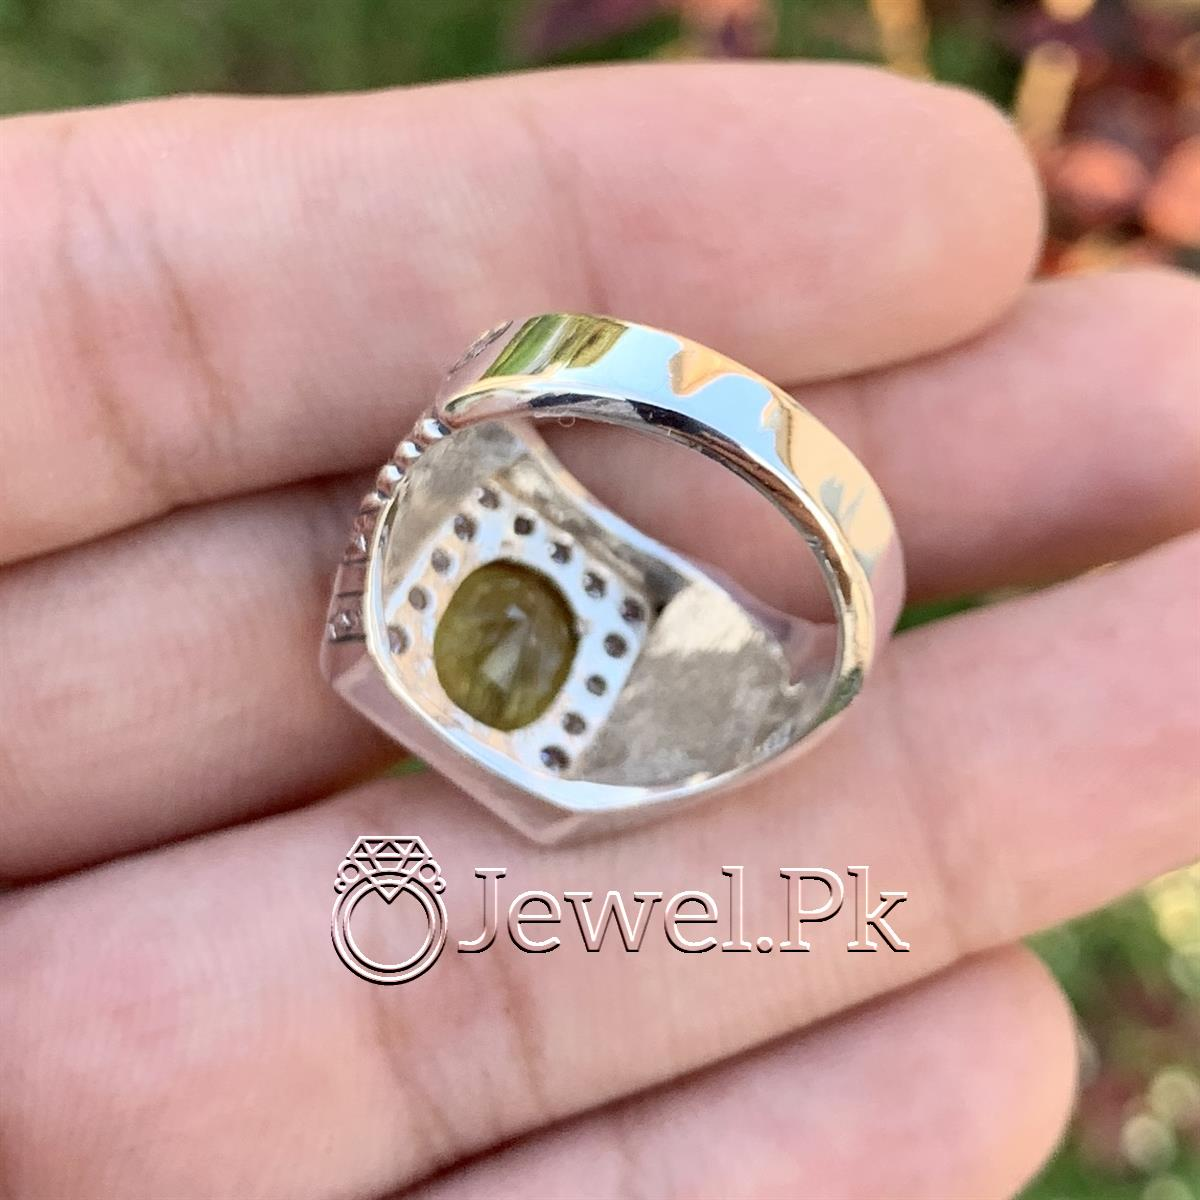 Natural Yellow Sapphire Ring Pukhraj Ring in Silver 925 6 natural gemstones pakistan + 925 silver jewelry online